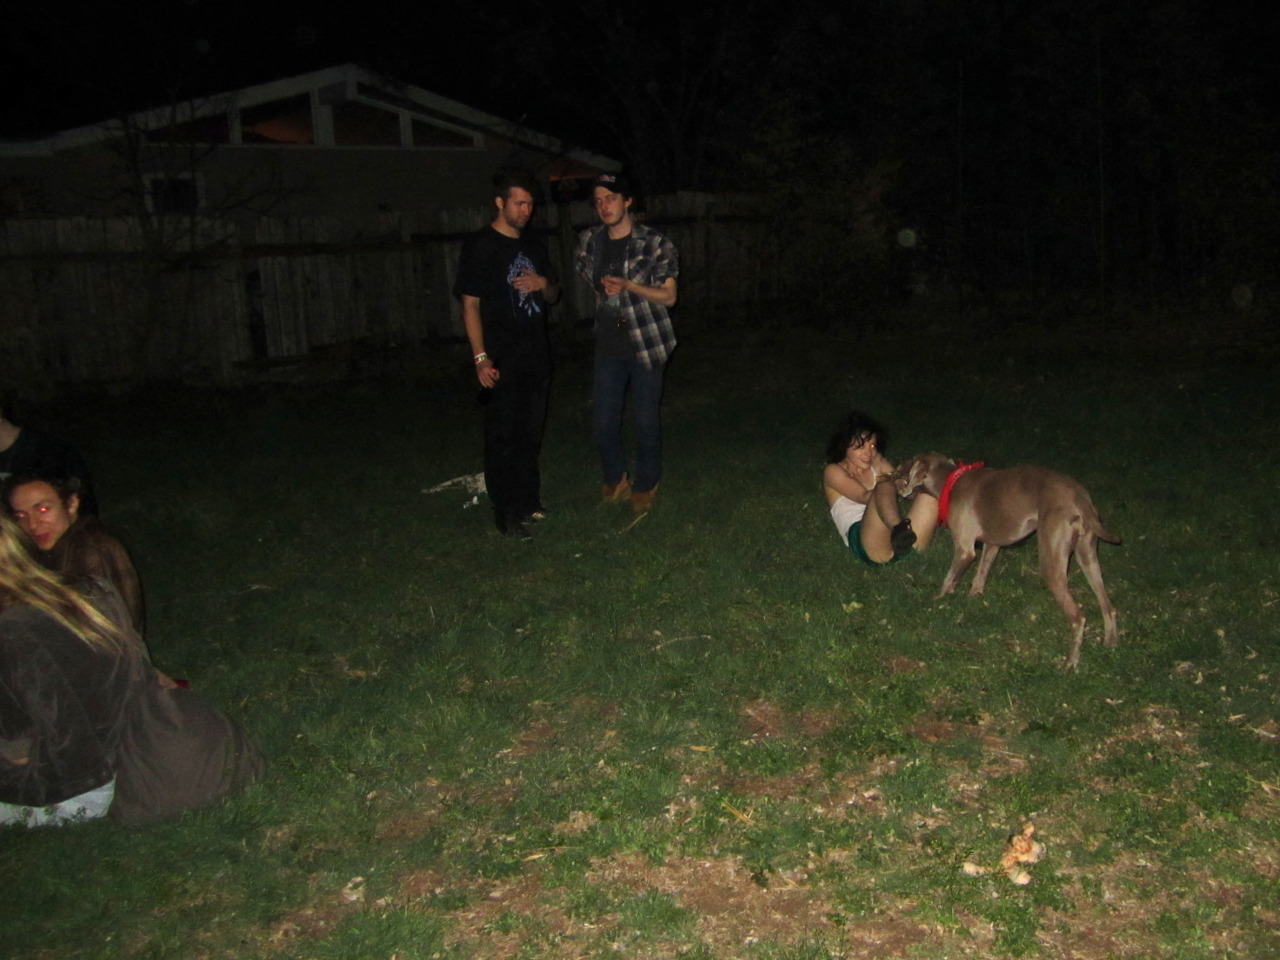 Backyard canine wrestling, 3am. Austin, TX